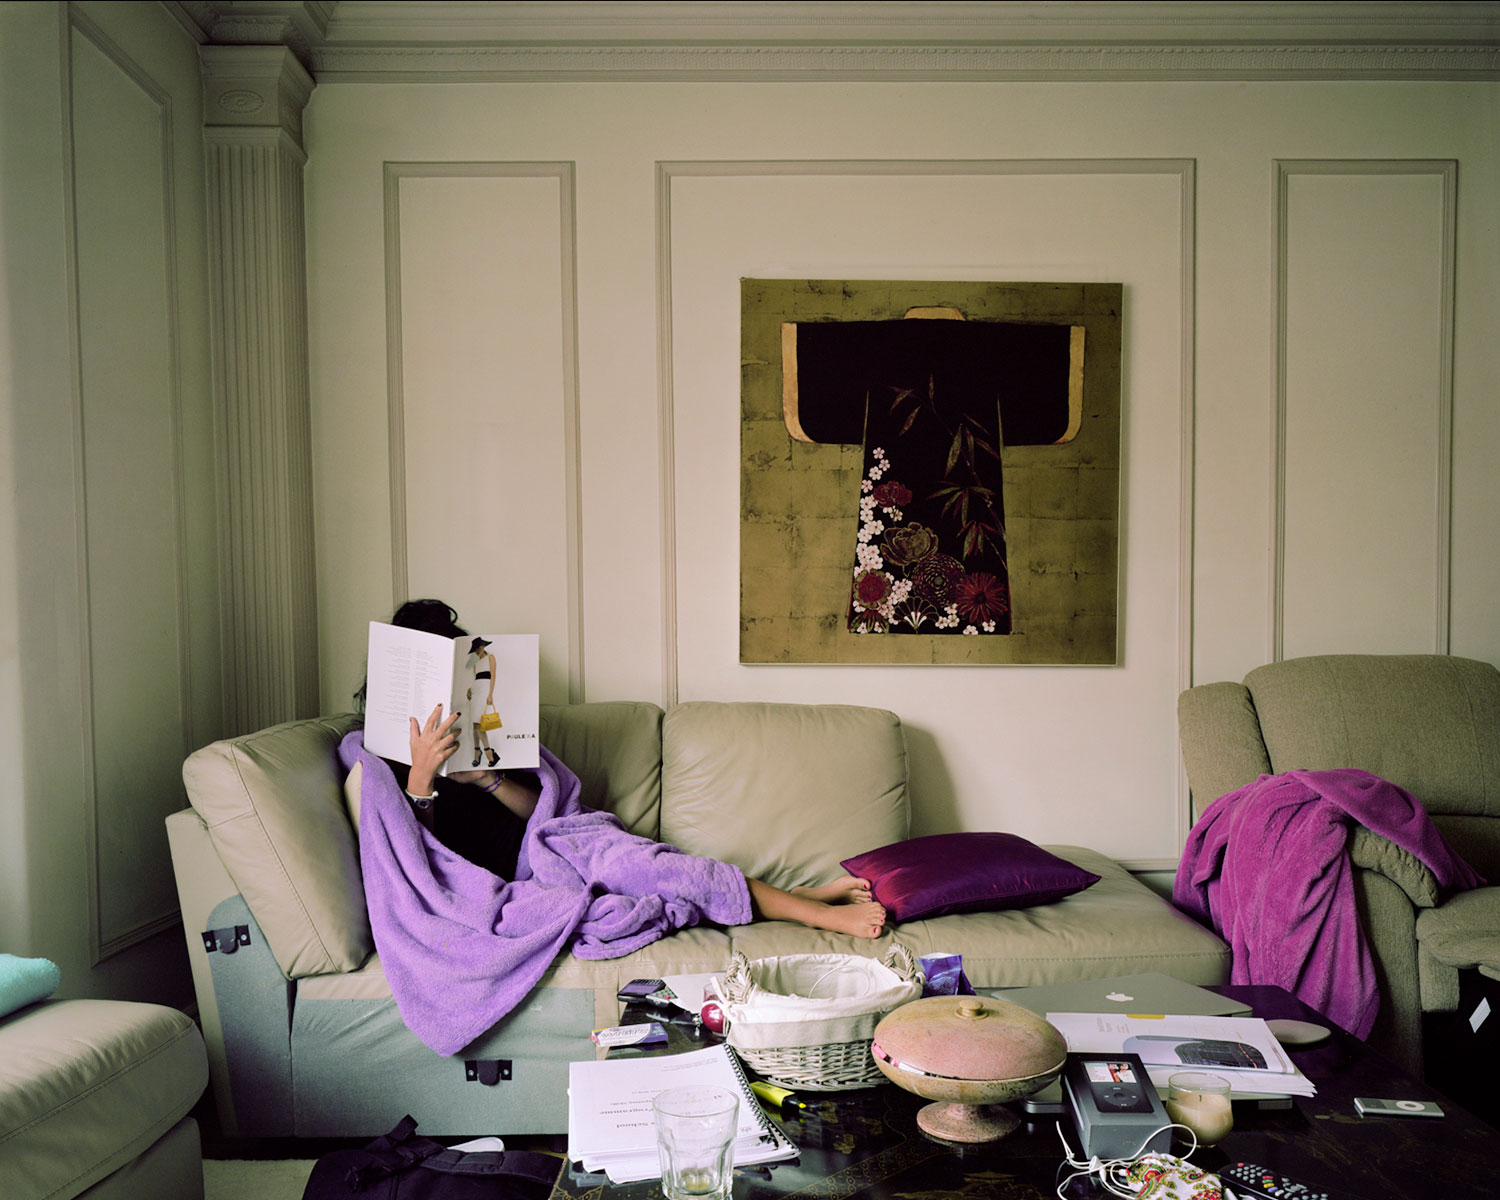 A woman, face obscured, reading a magazine reclining on a sofa